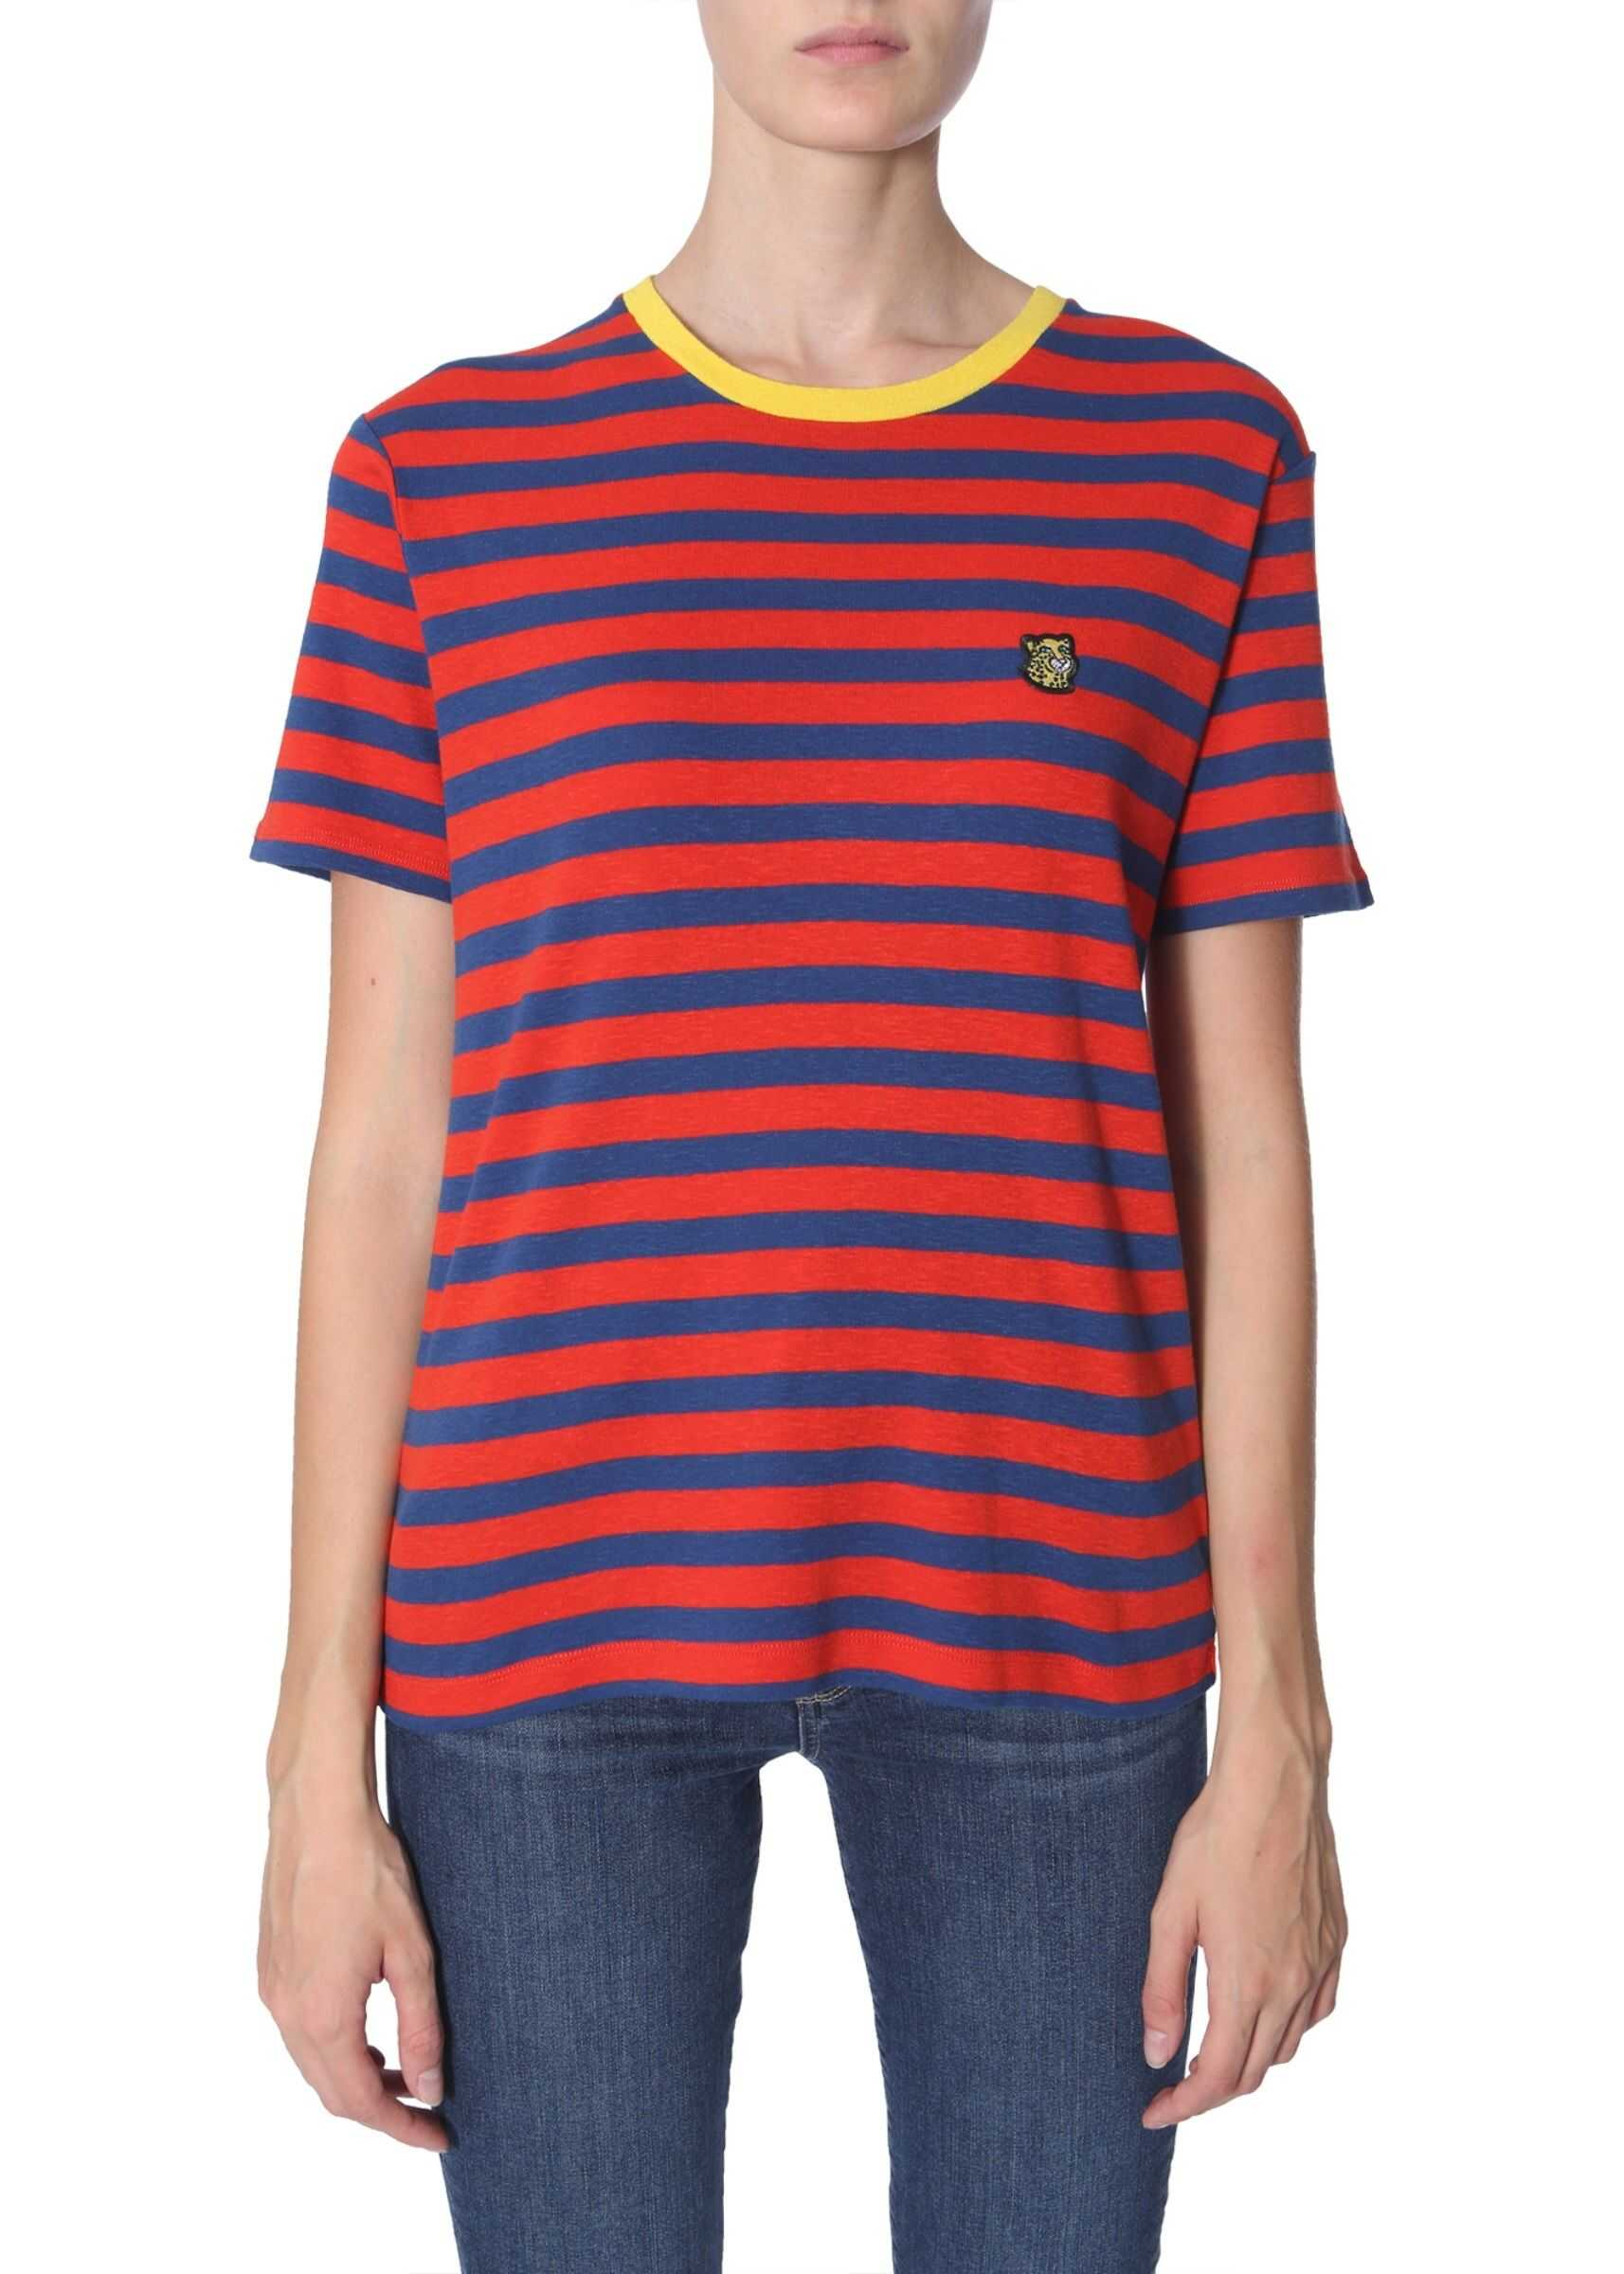 PS by Paul Smith Striped T-Shirt RED